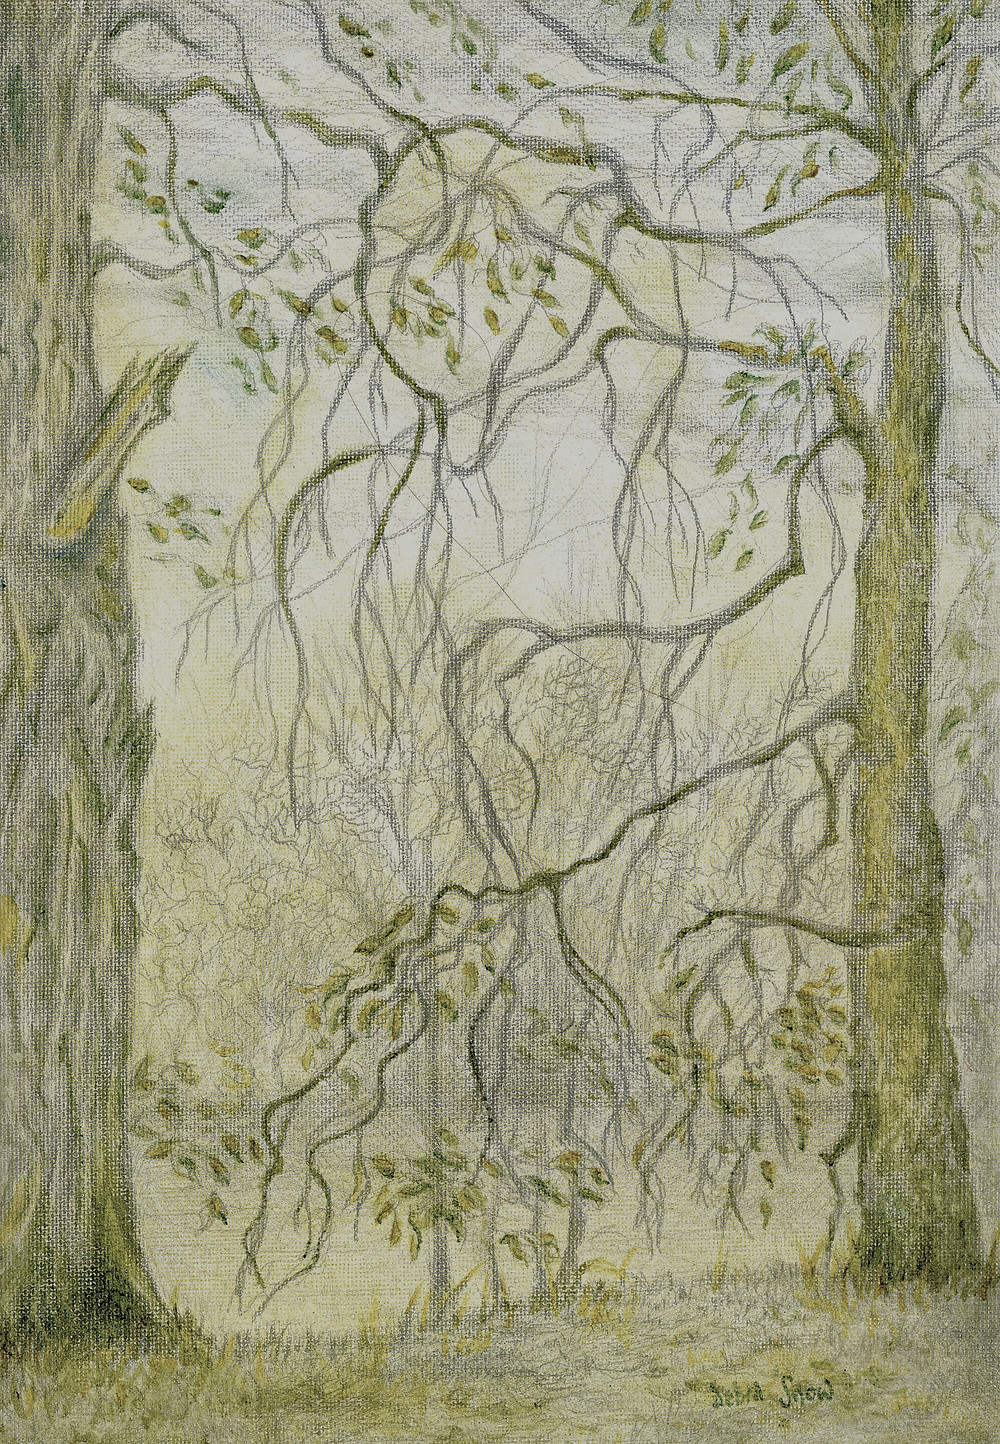 Ethereal landscape in silverpoint and oil